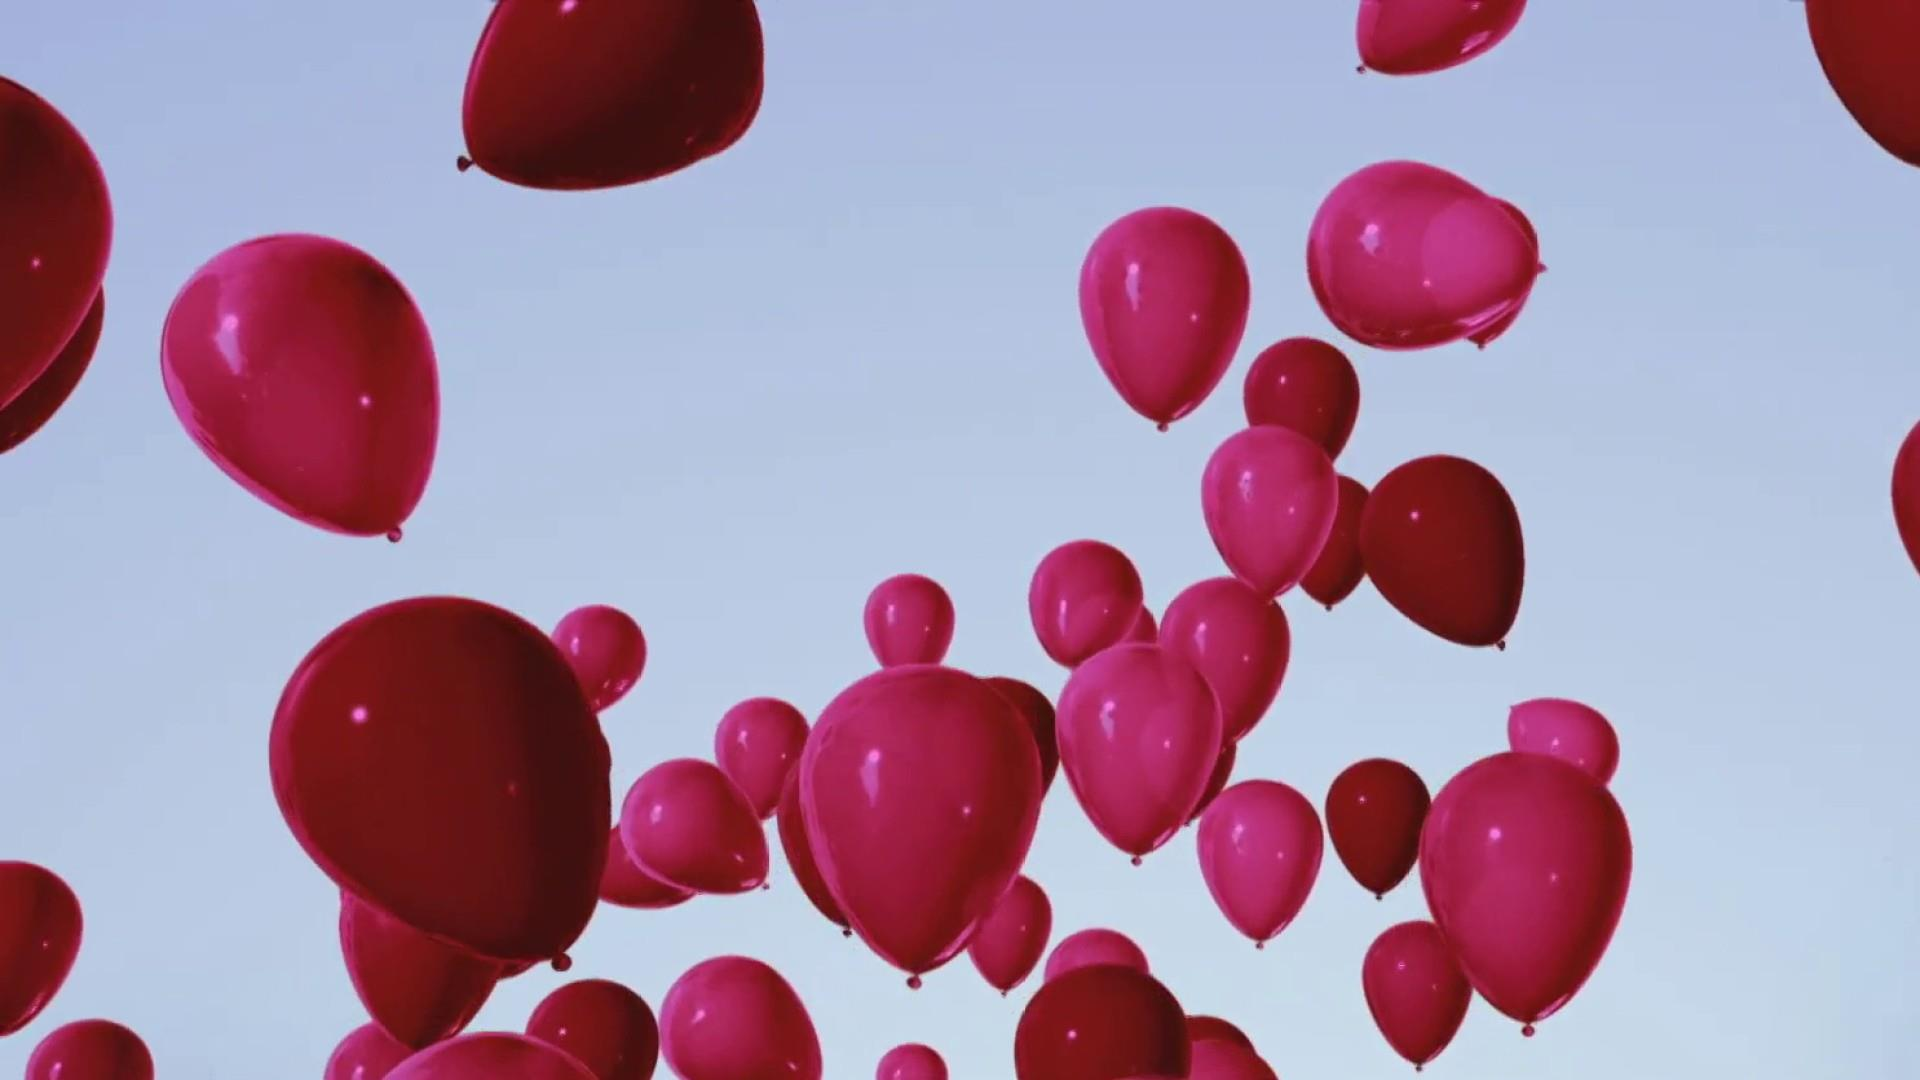 Not just Party City: Why helium shortages worry scientists and researchers